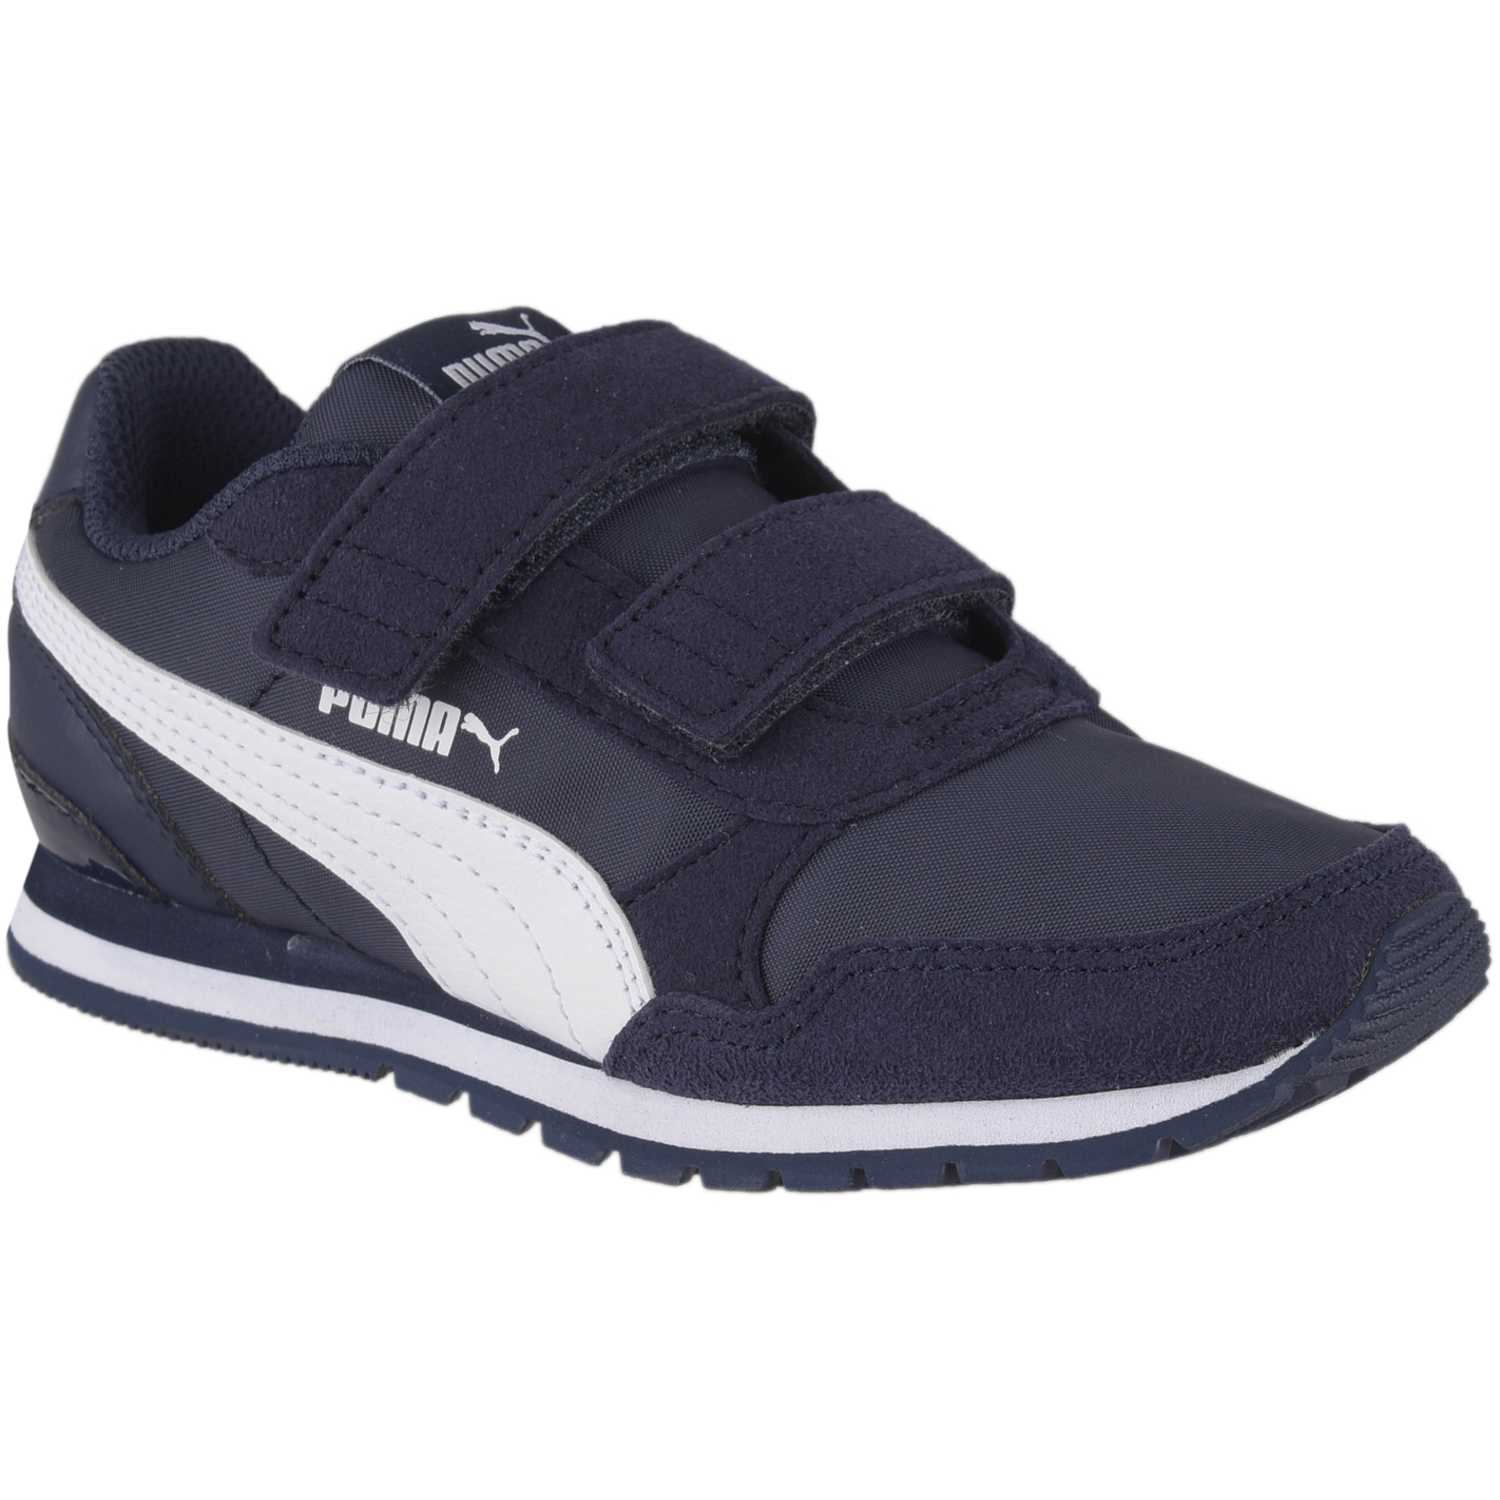 Puma st runner v2 nl v inf Azul / blanco Walking